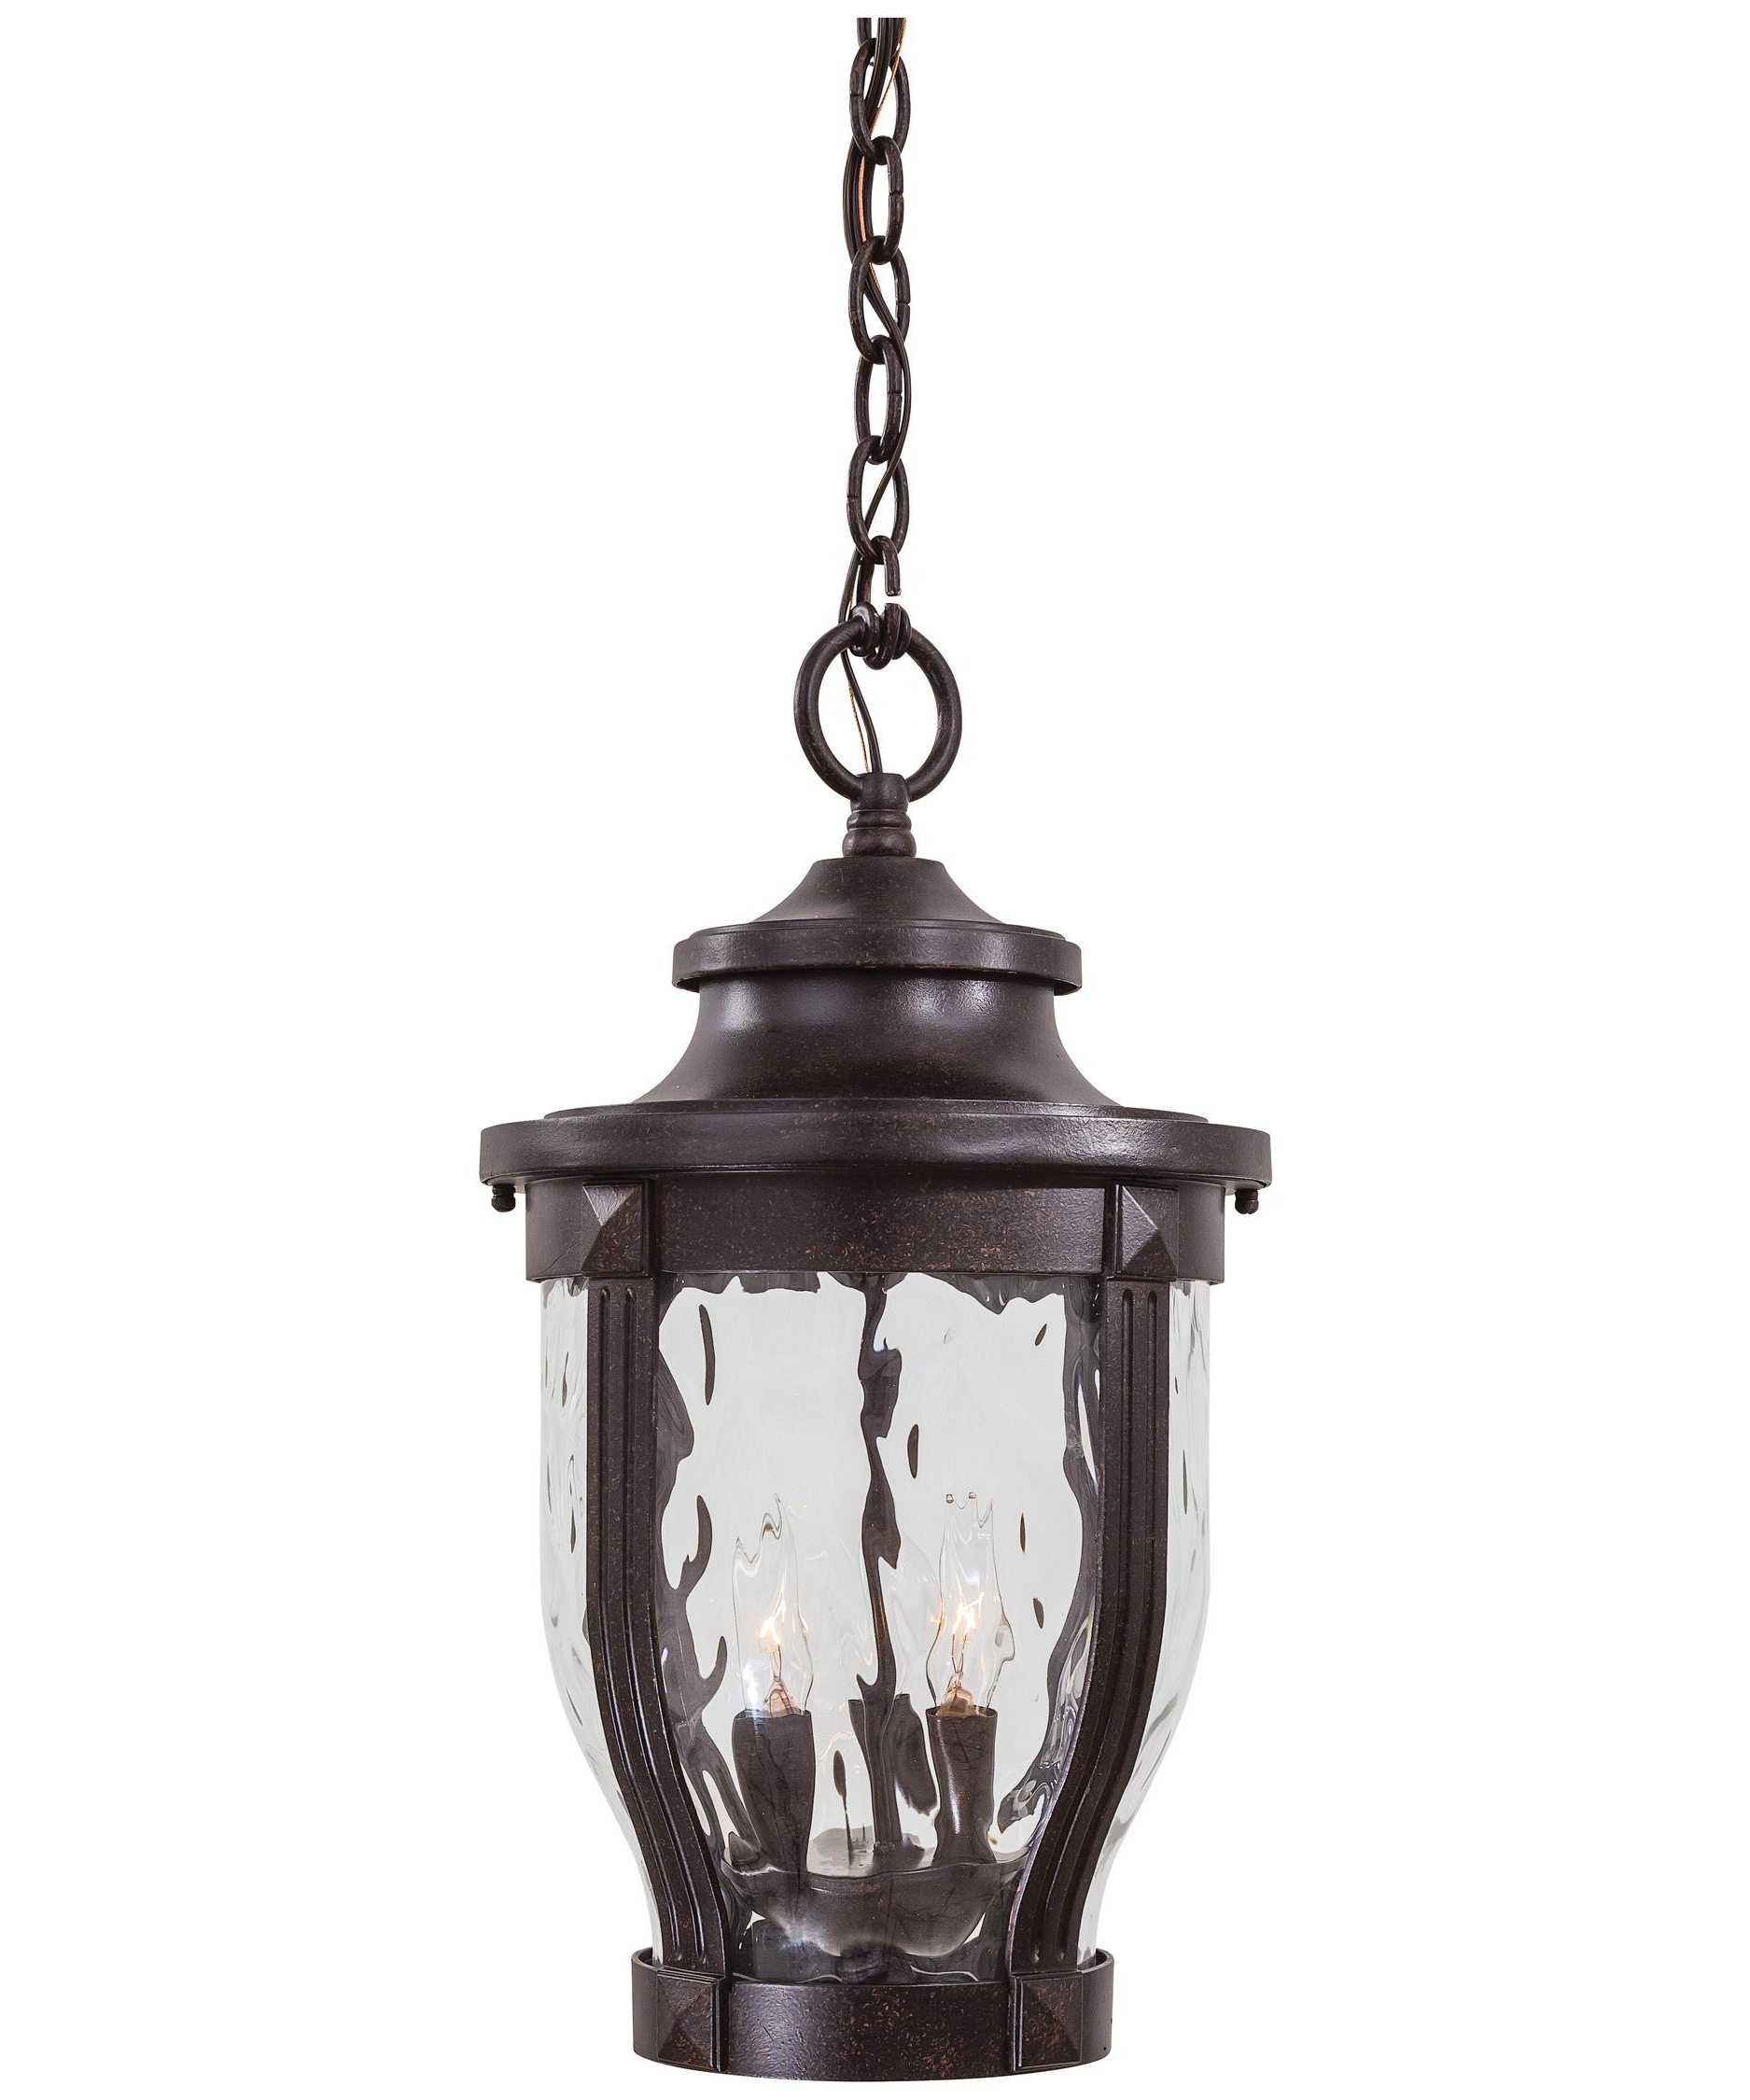 2018 Minka Lavery 8764 Merrimack 10 Inch Wide 3 Light Outdoor Hanging Throughout Outdoor Hanging Ceiling Lights (View 1 of 20)